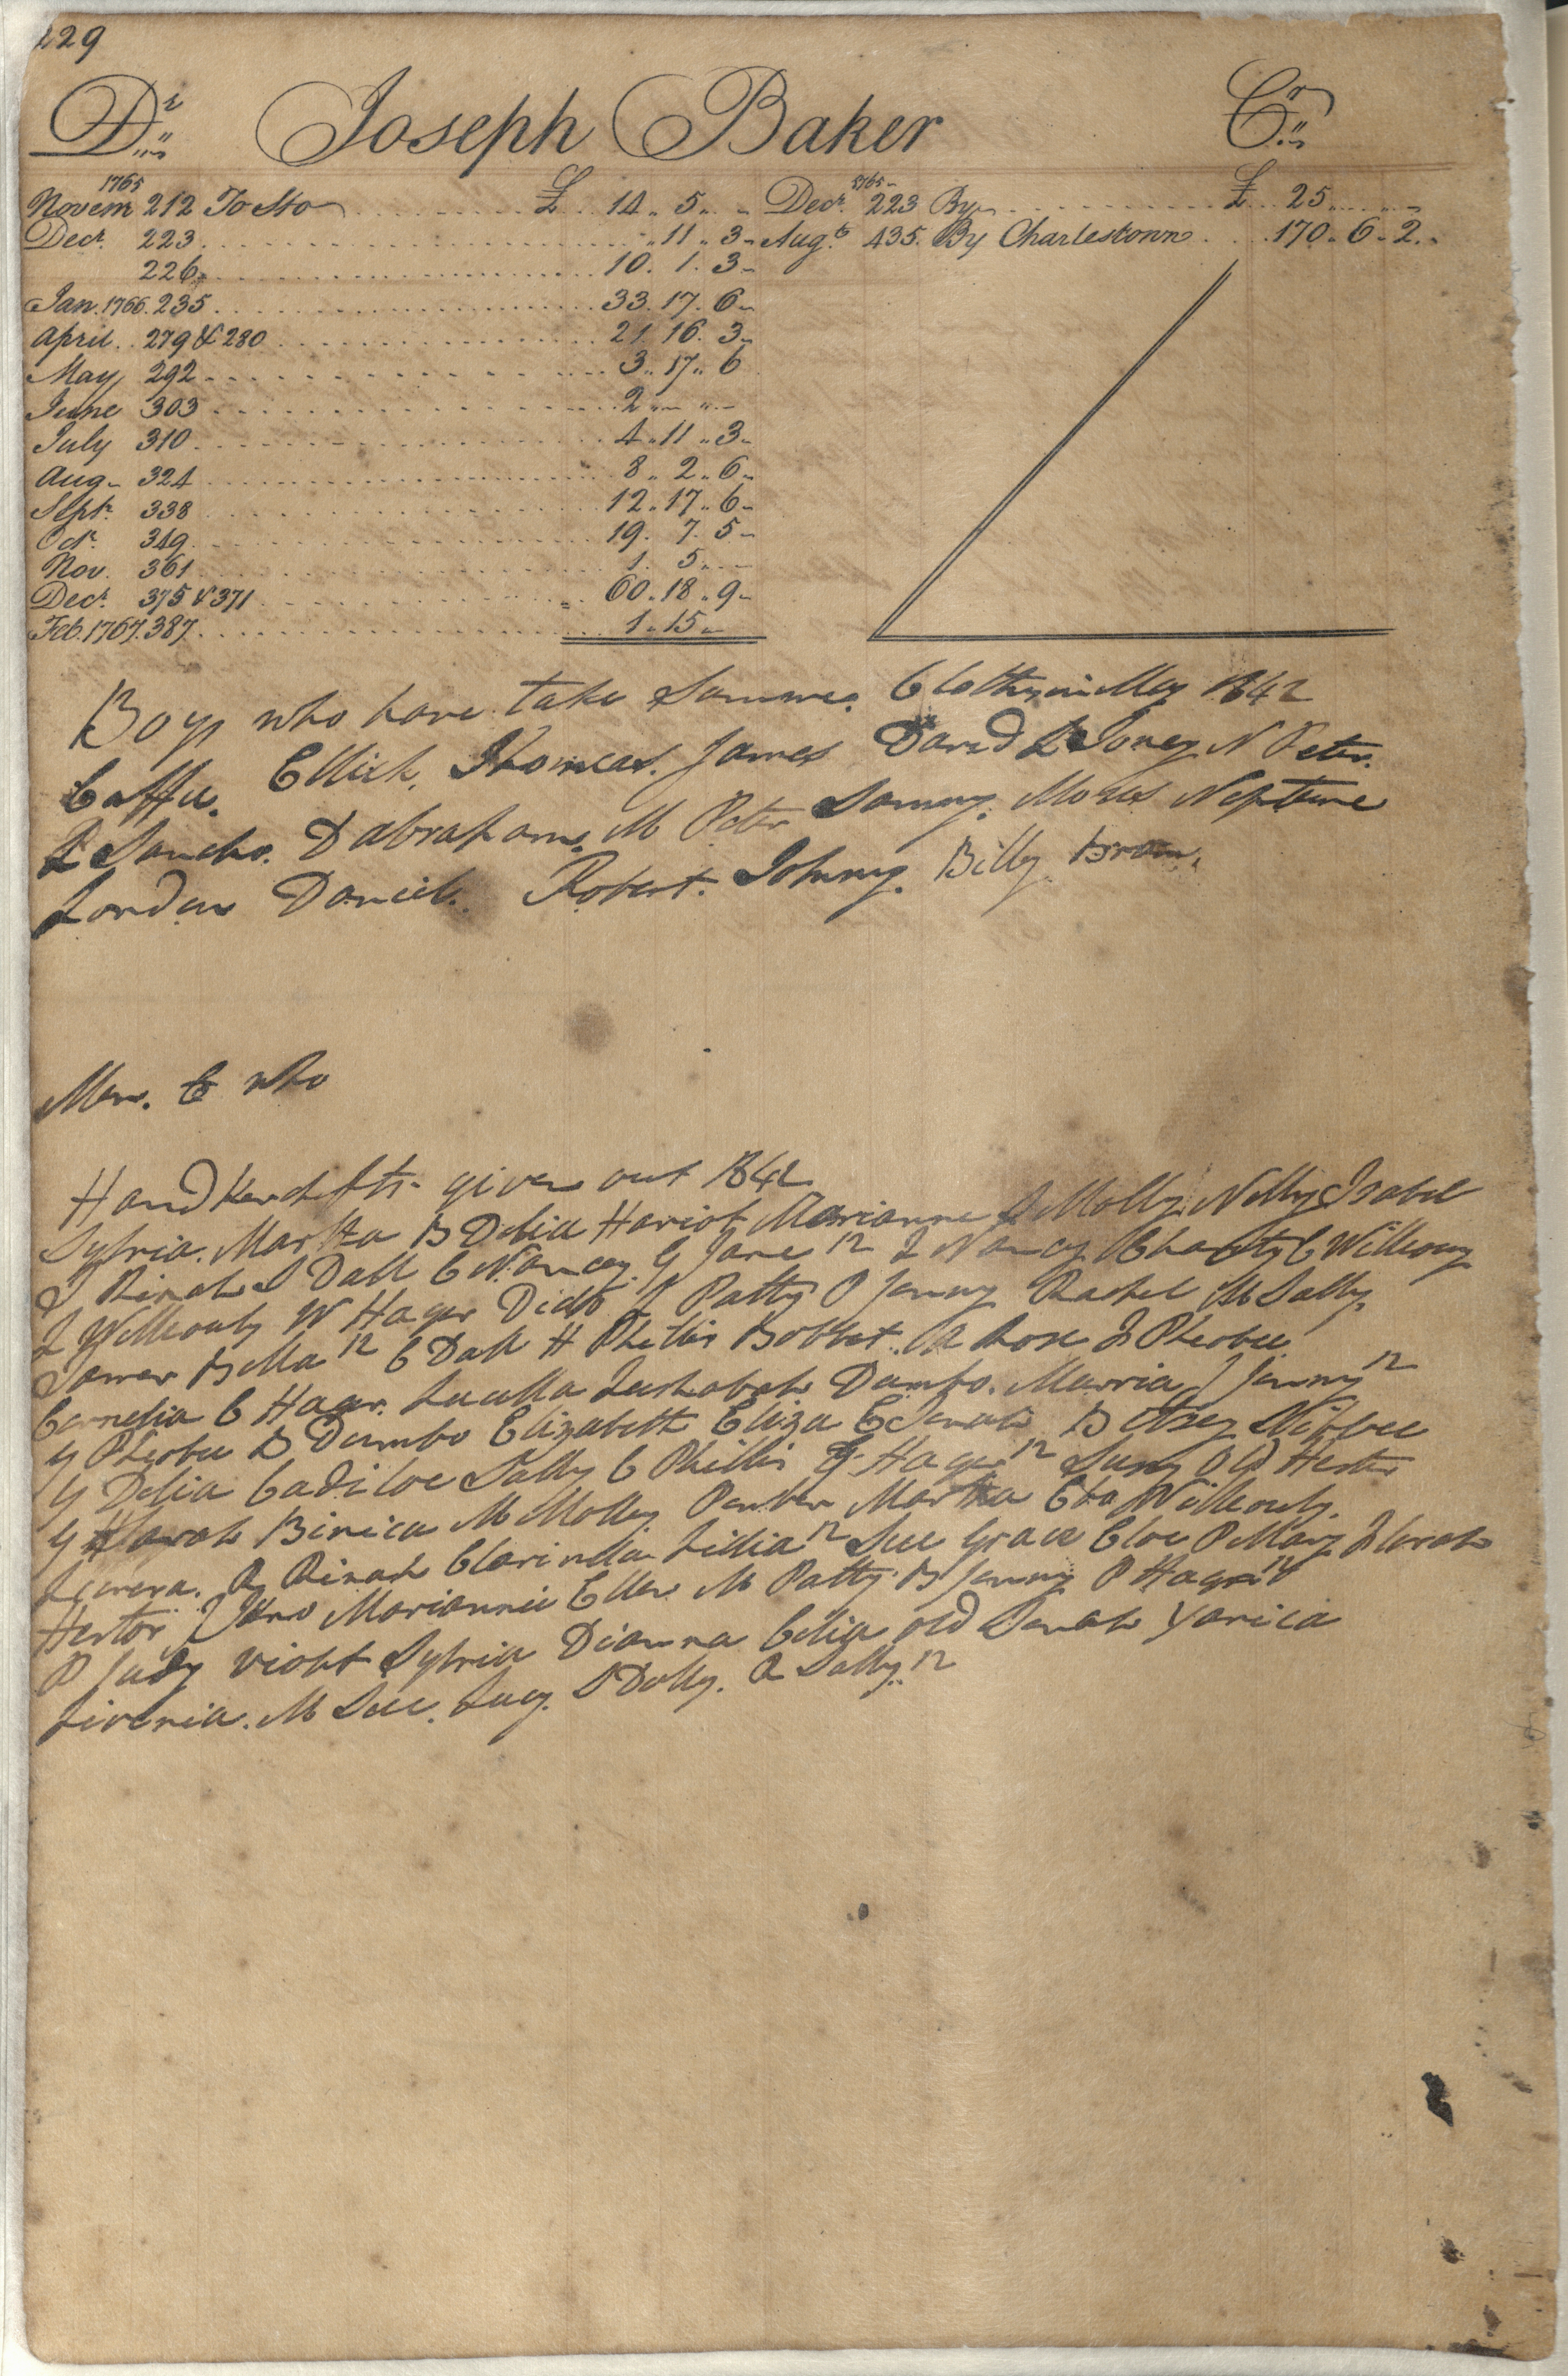 Plowden Weston's Business Ledger, page 229